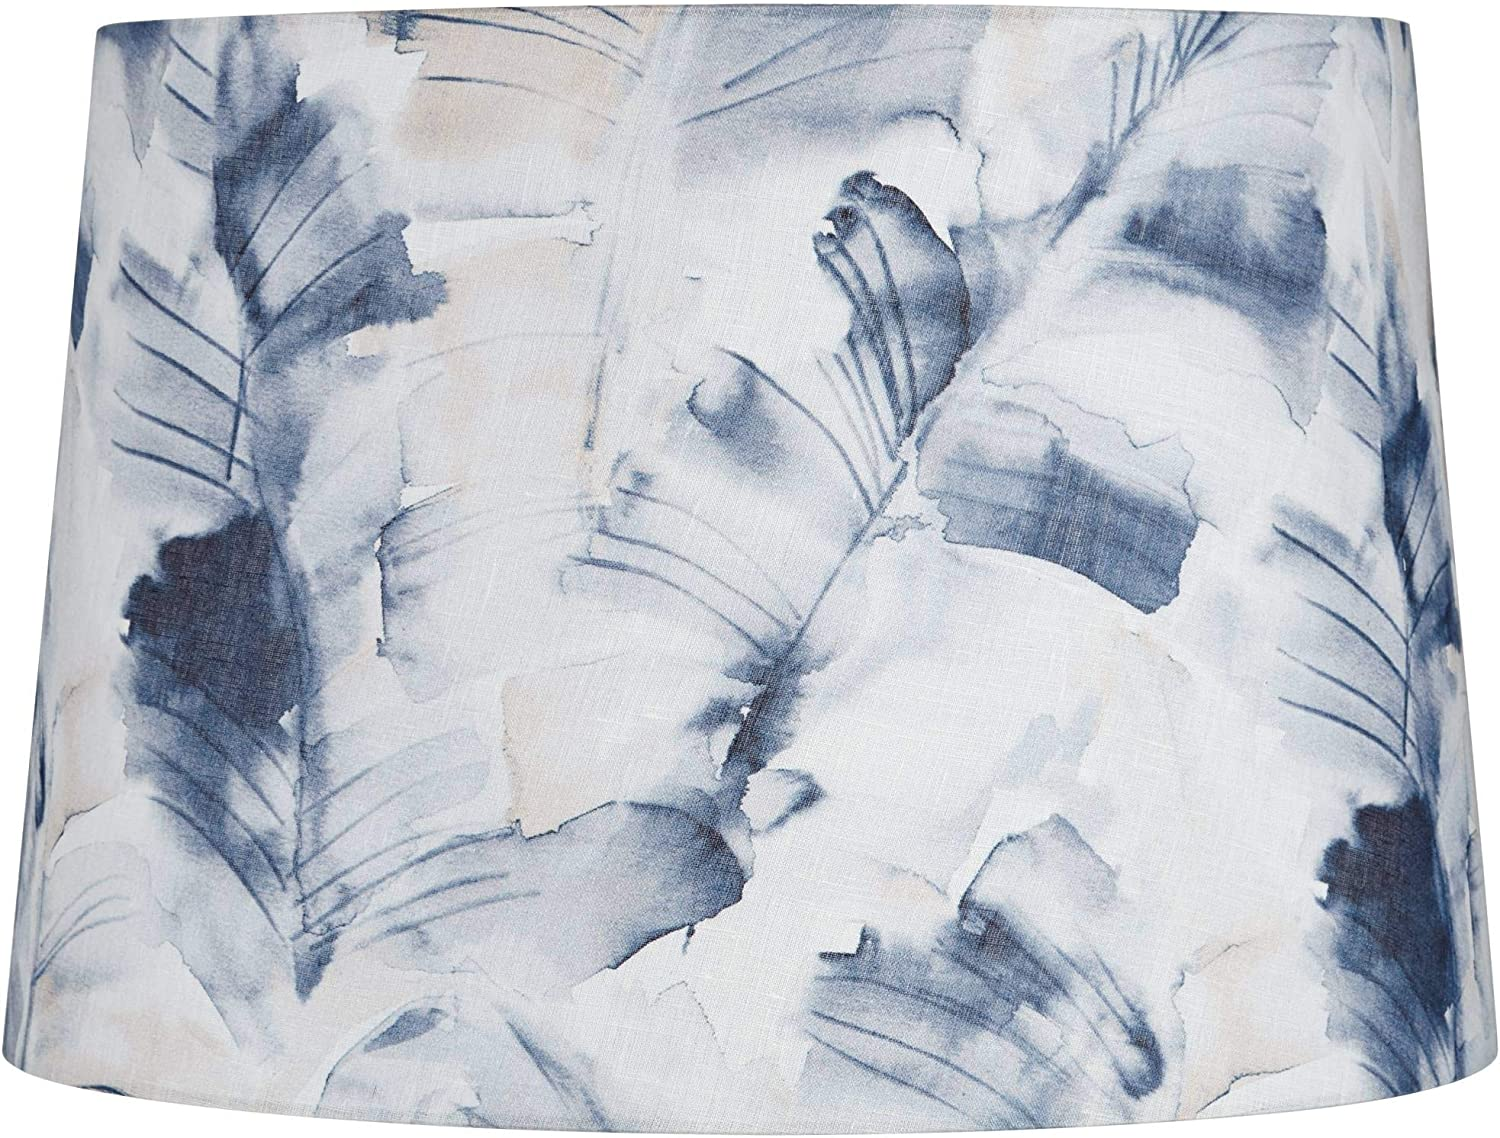 Blue Watercolor Palm Leaf Drum Lamp Shade 14x16x11 (Spider) - Springcrest